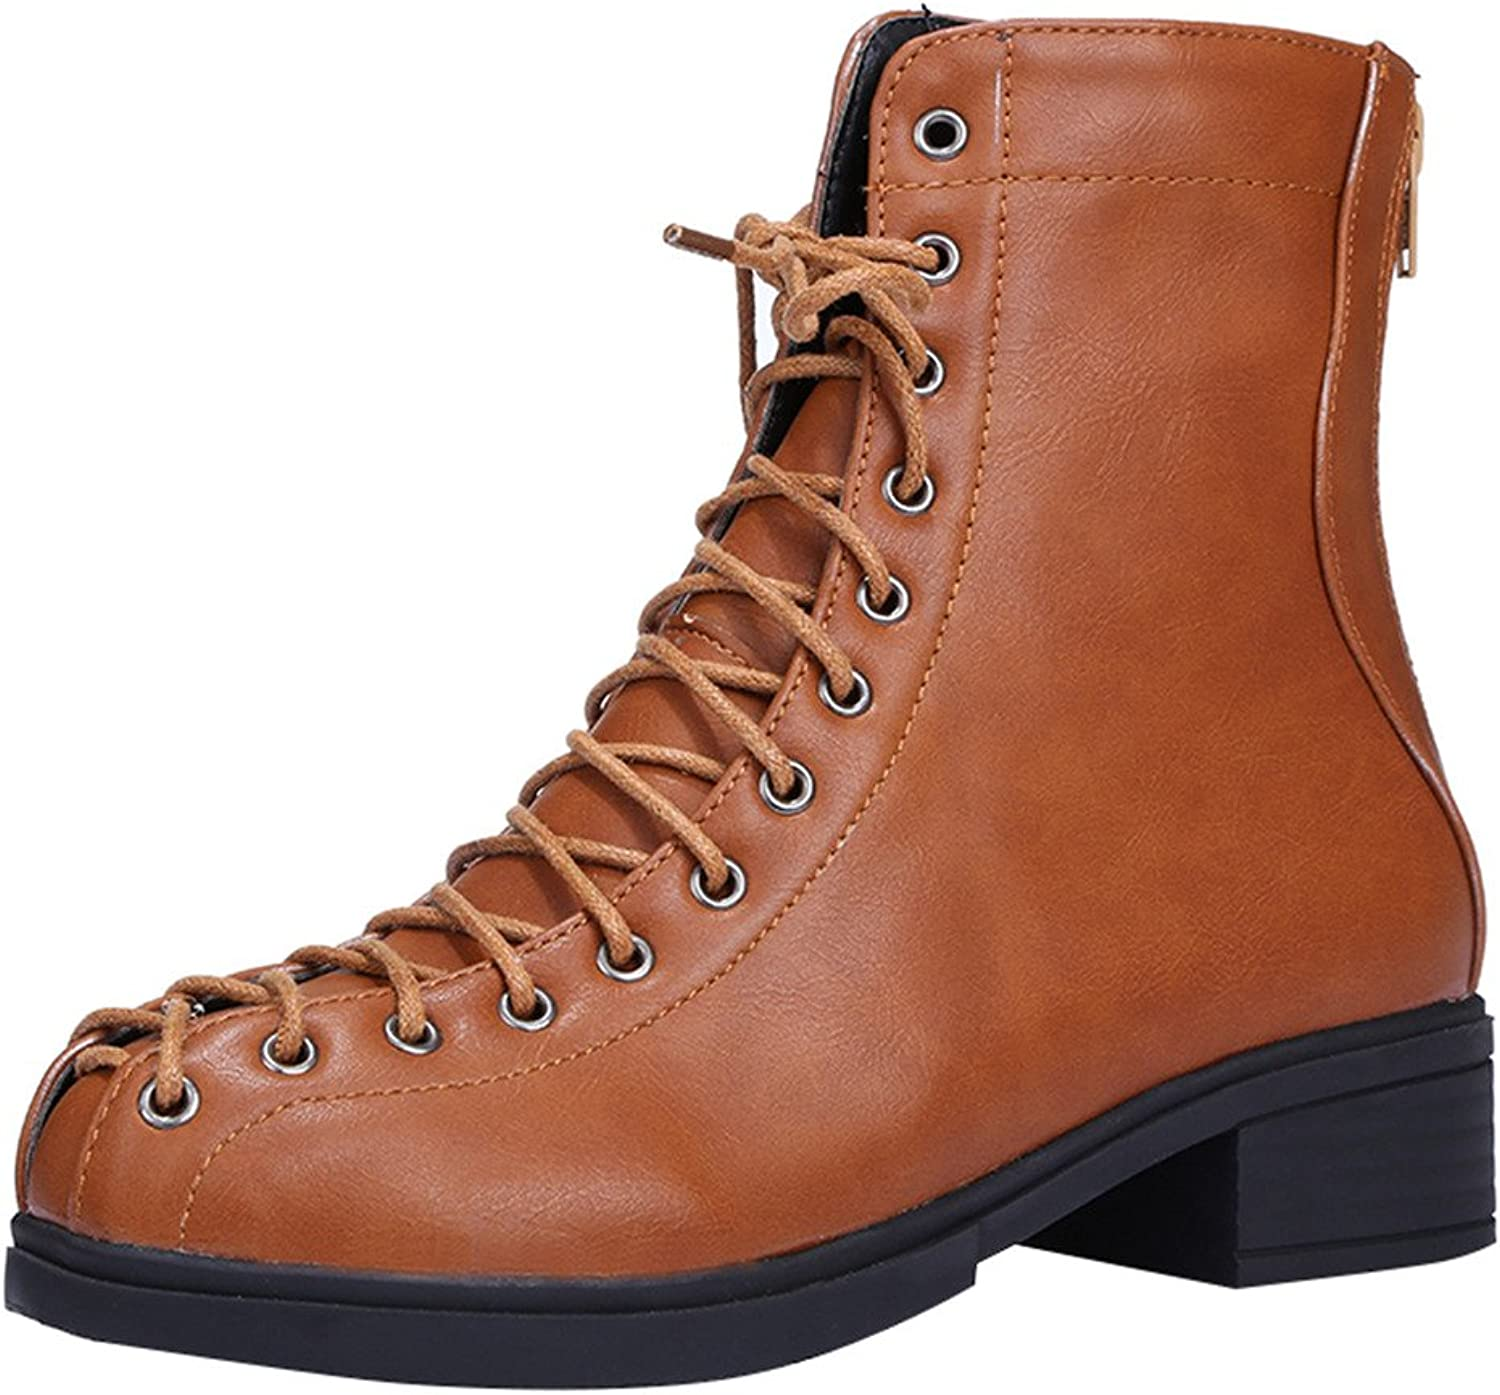 Eclimb Womens Round Toe Military Lace Up Combat Ankle Boots